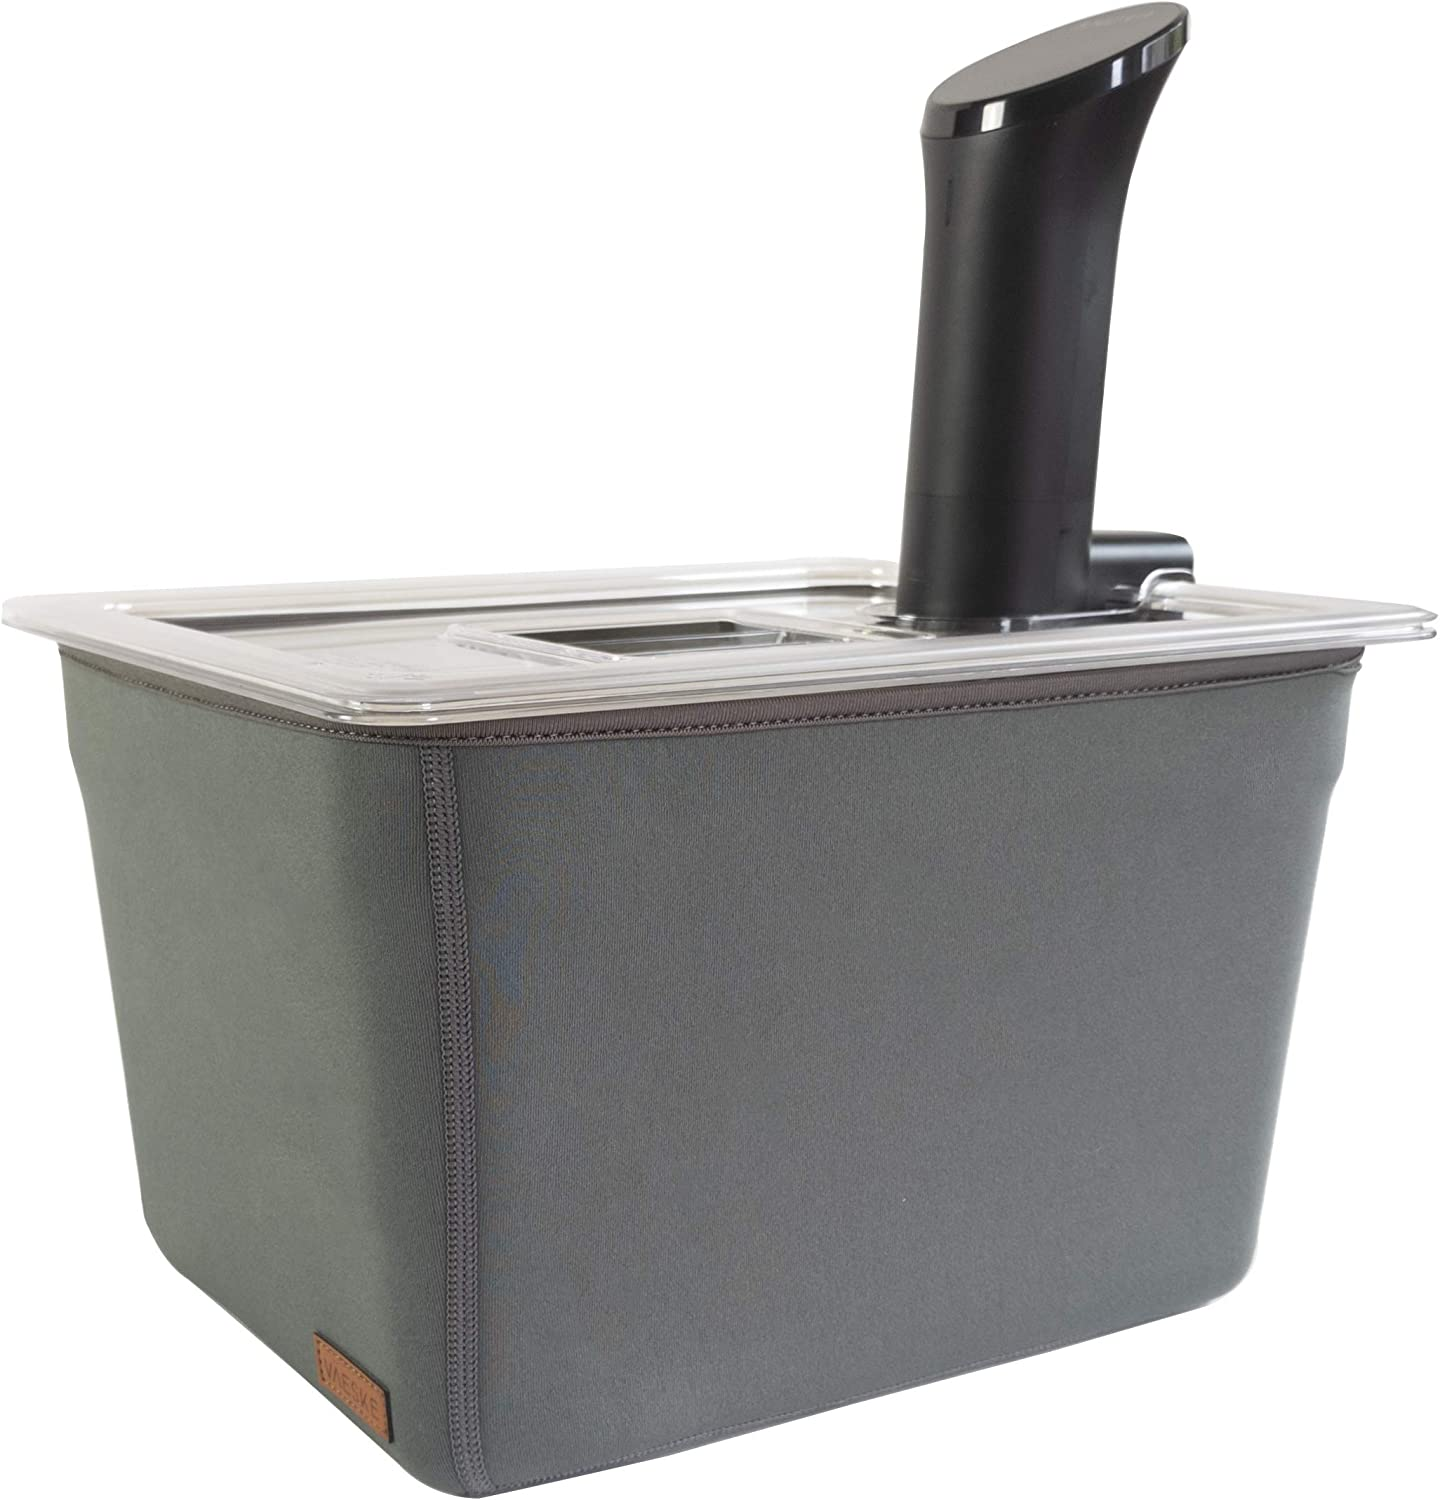 Väeske Sous Vide Container, Lid and Insulating Sleeve Set (12 Qt, Container/Lid/Sleeve)